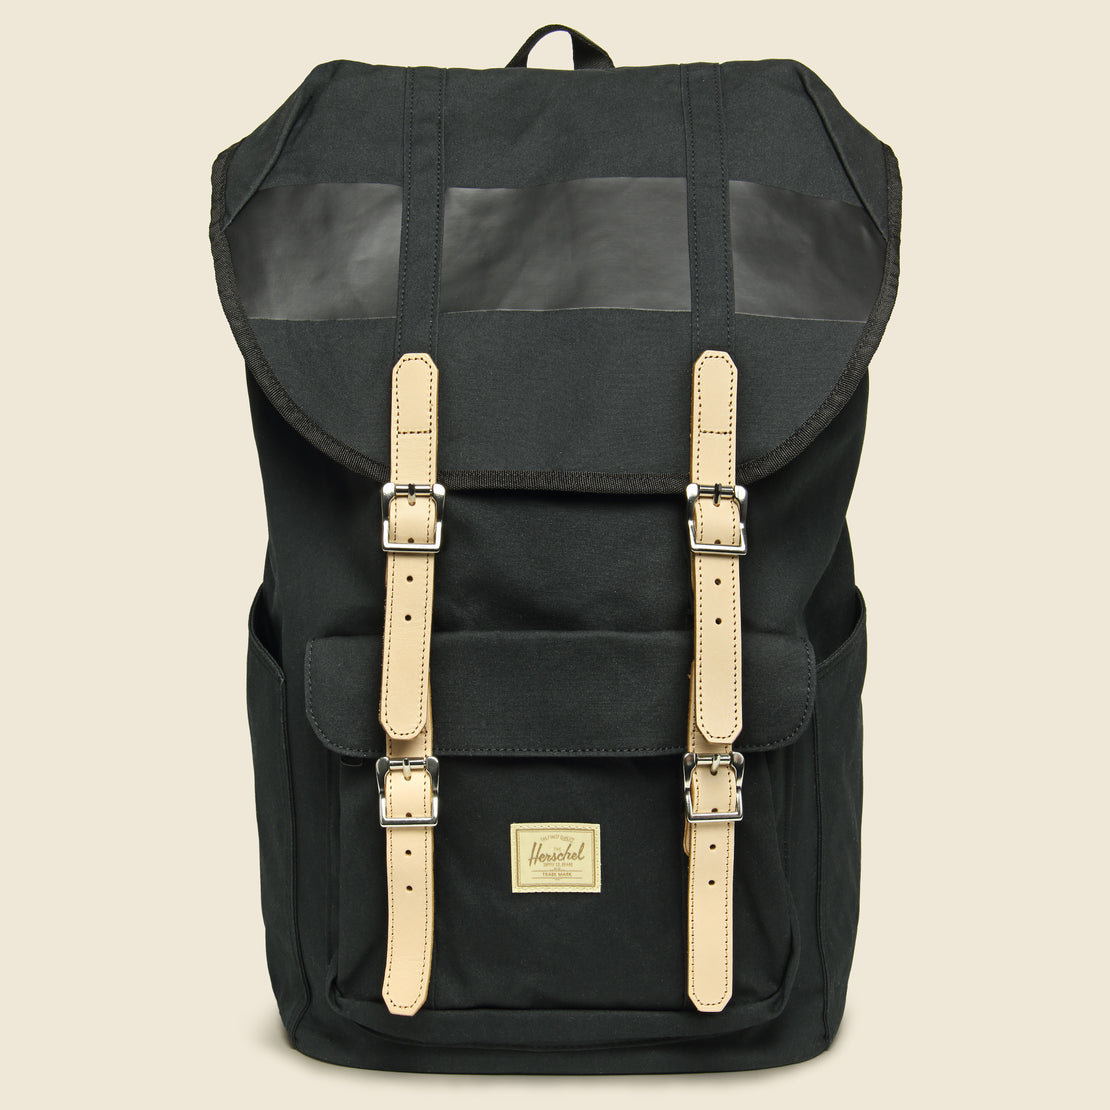 Herschel Supply Co Lil American Premium Cotton Backpack - Black